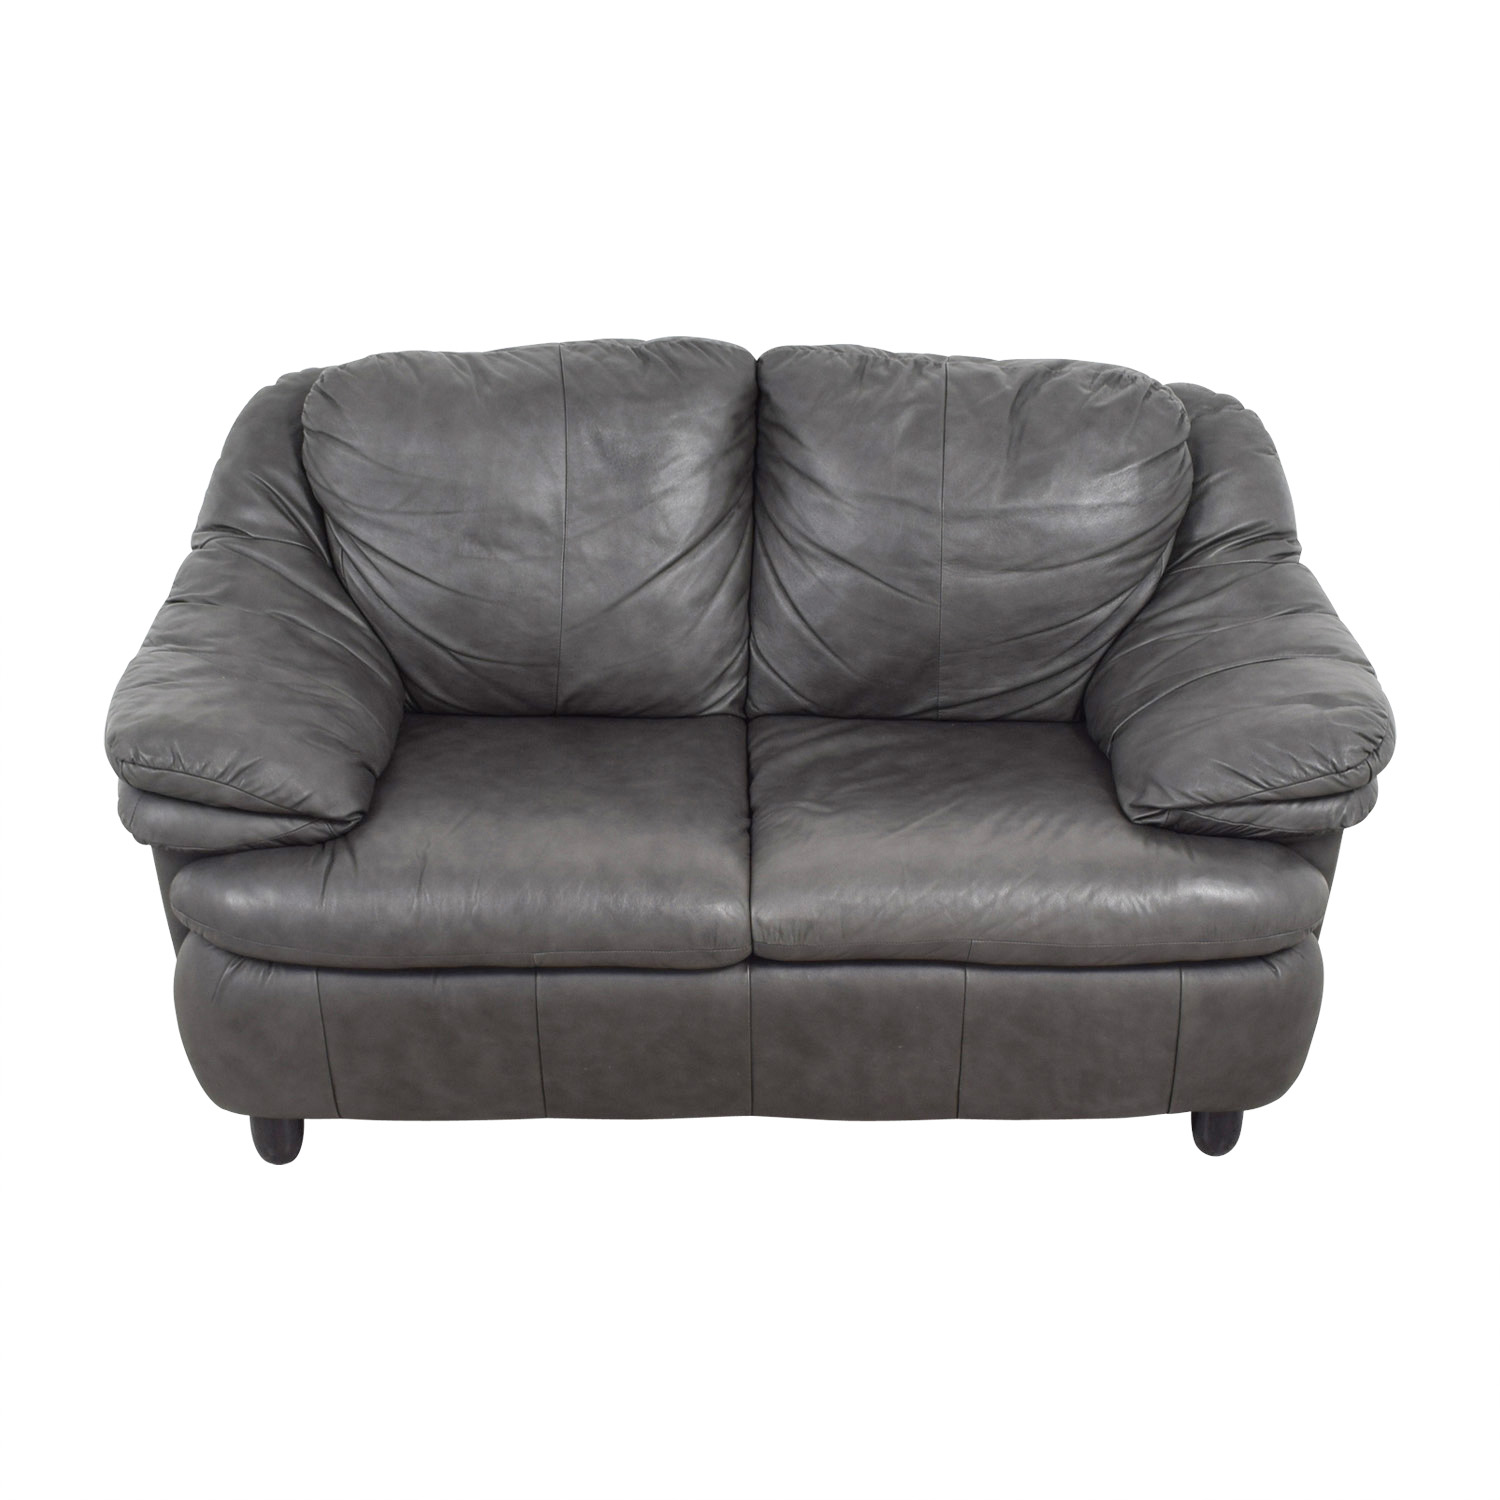 shop Jennifer Leather Natale Grey Love Seat Jennifer Leather